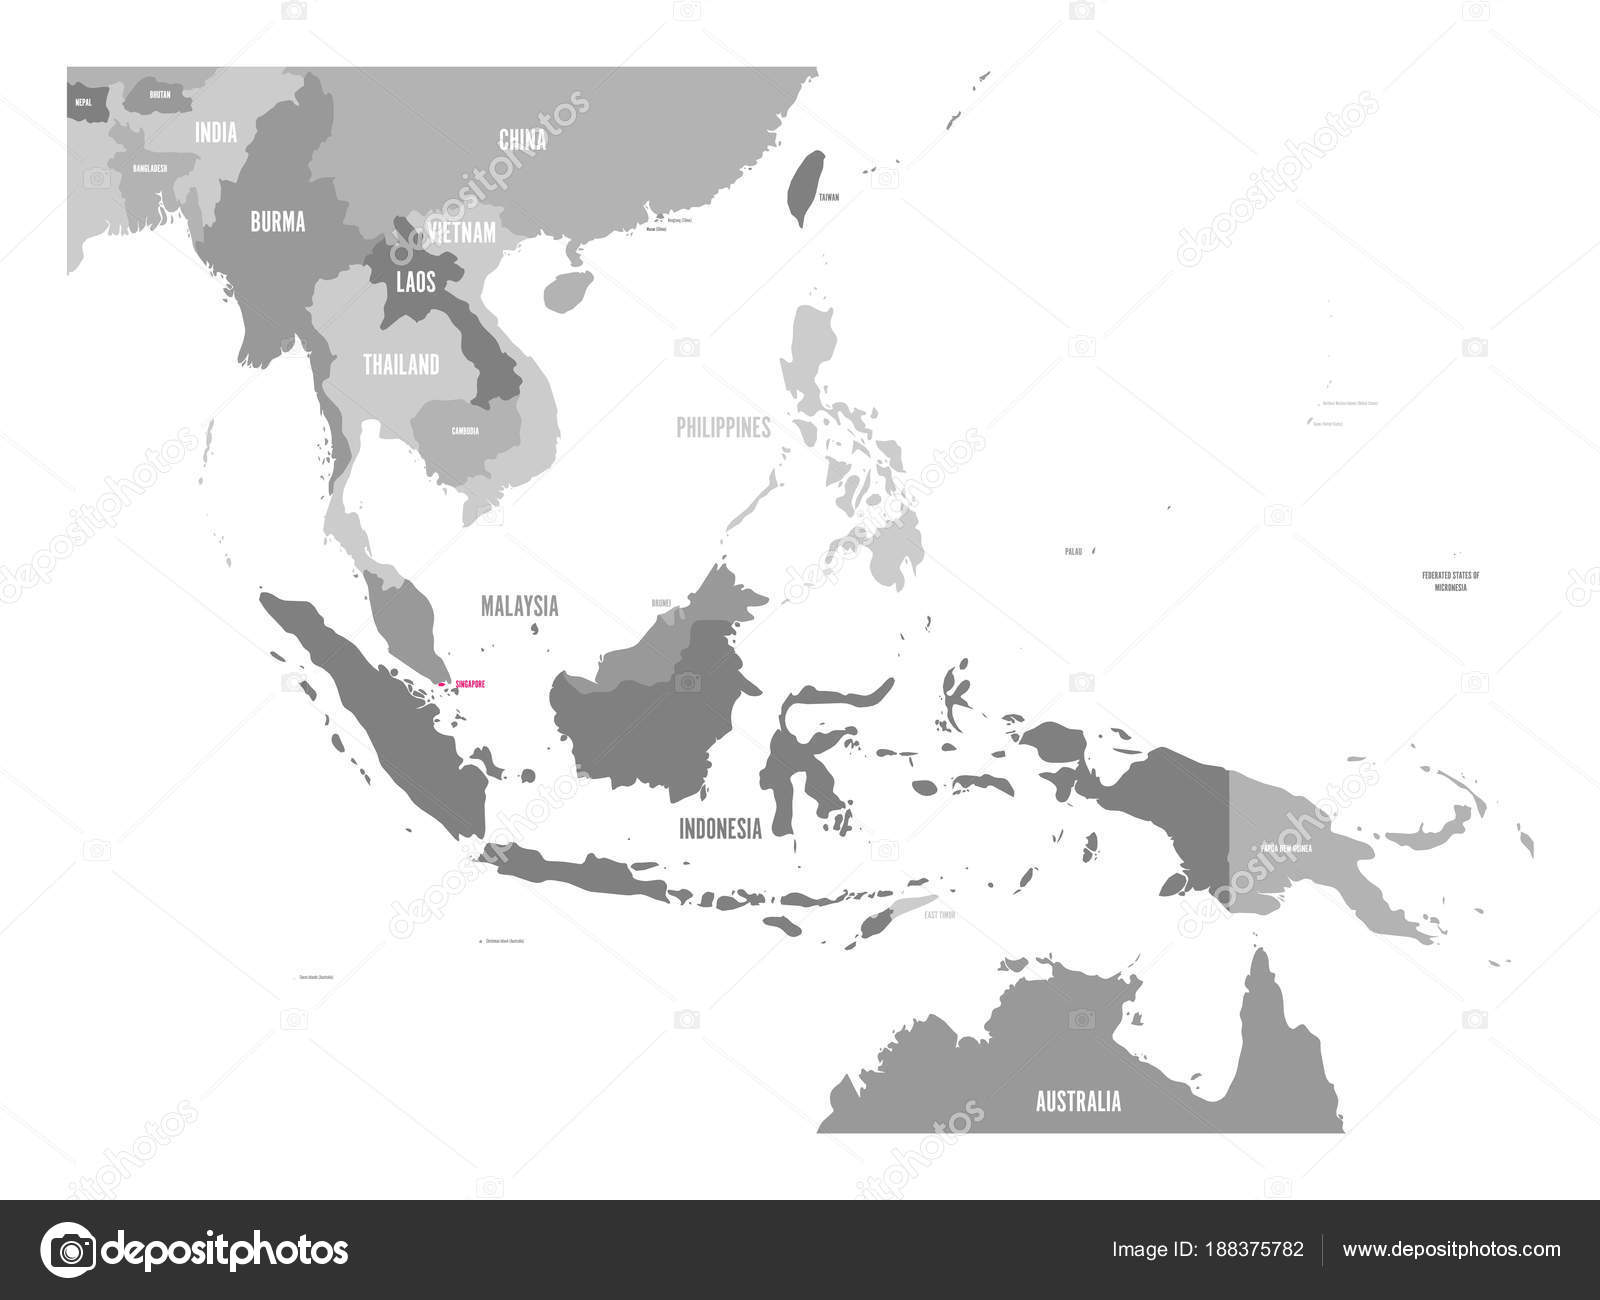 Singapore map vector free download full hd maps locations vector map of world countries buy top ten richest online showing country wise free download physical world map country wise free download singapore flag gumiabroncs Choice Image